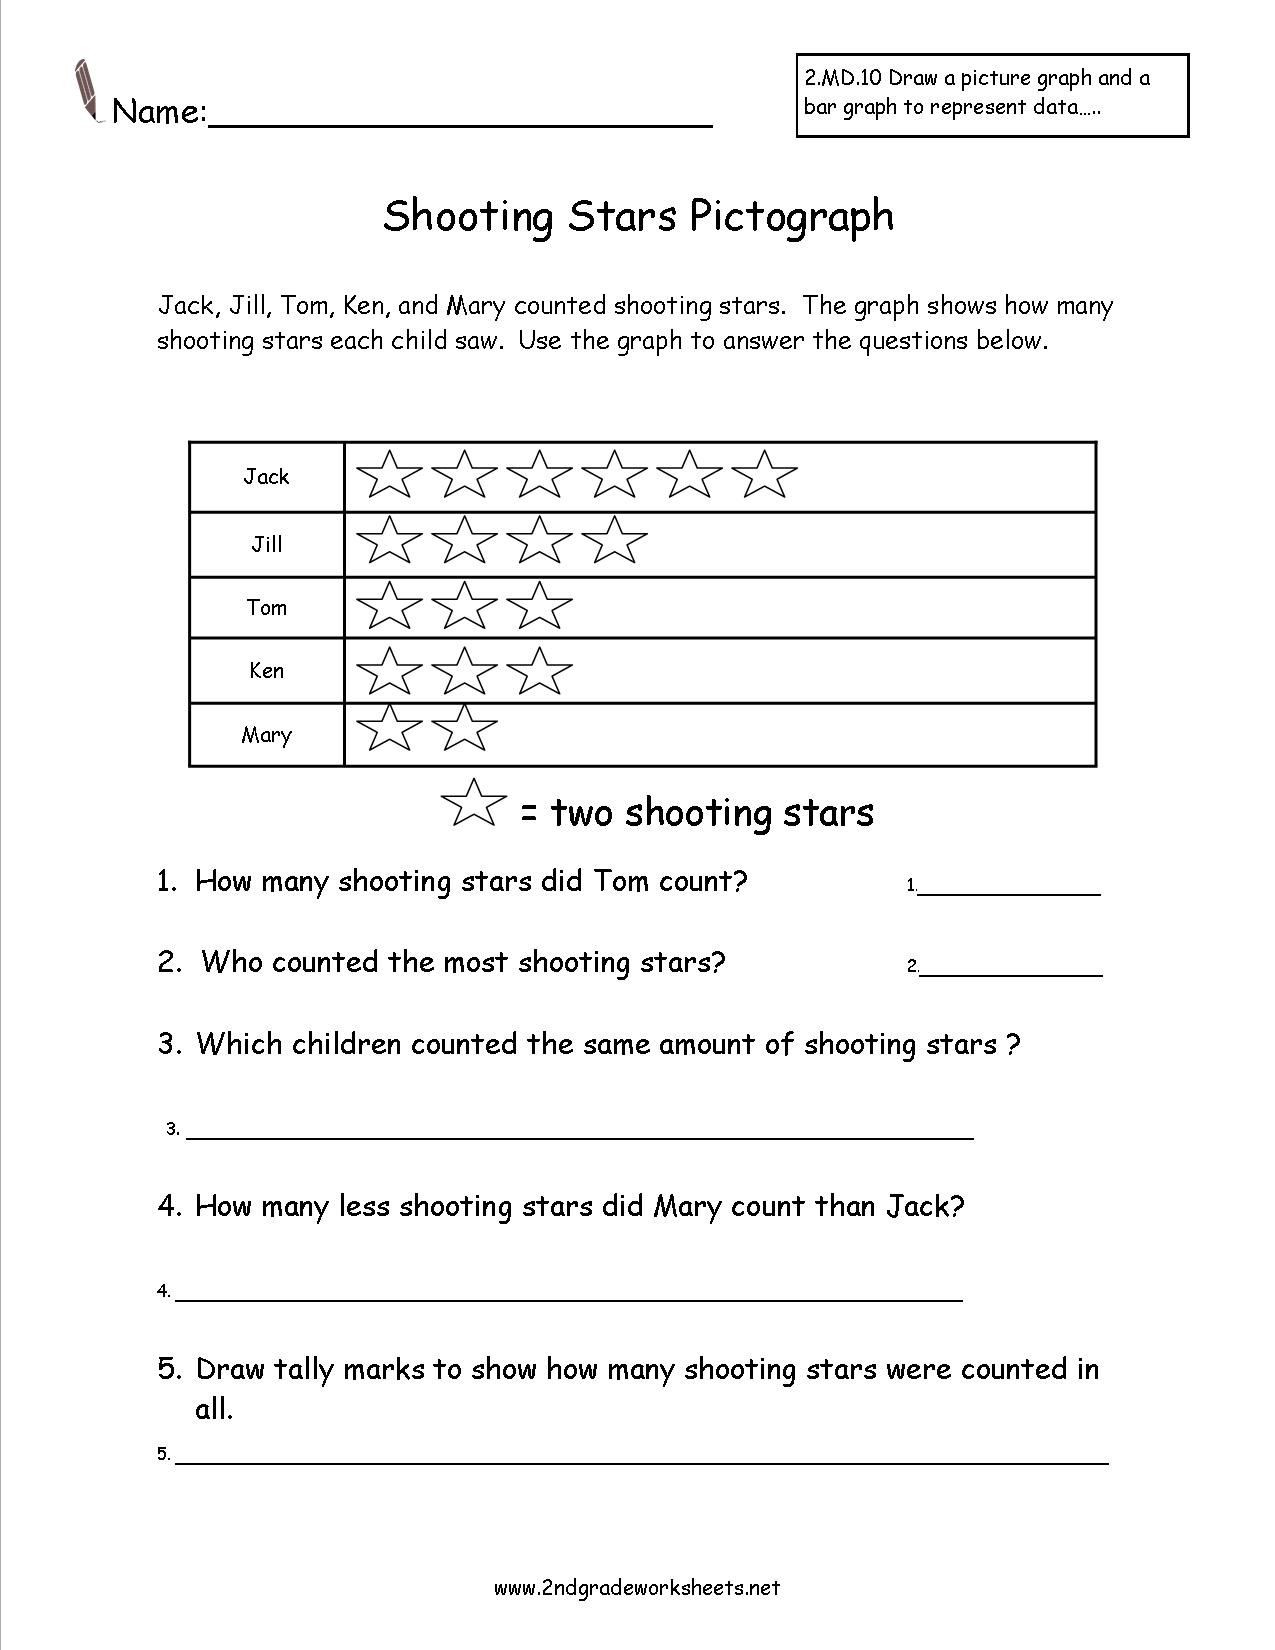 Line Graph Worksheet 3rd Grade Shooting Stars Pictograph Worksheet